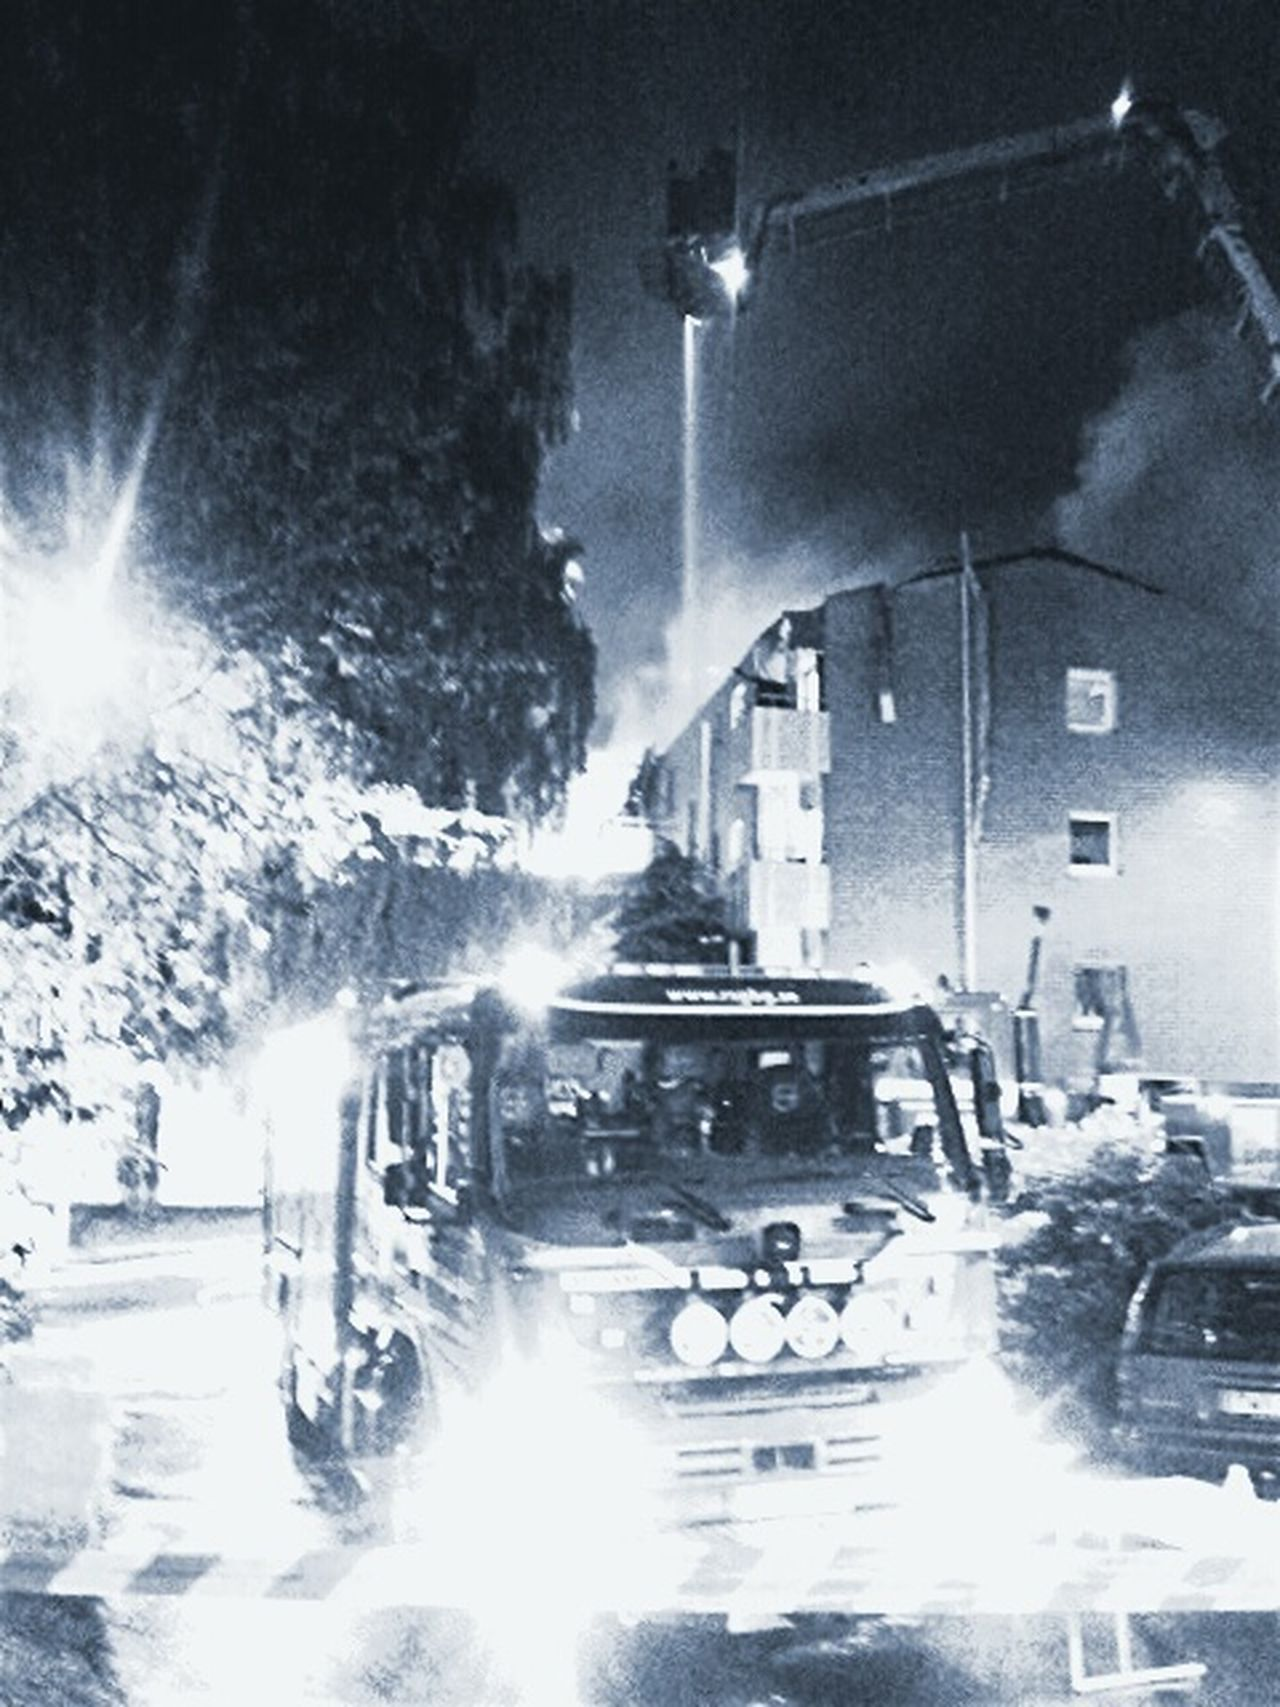 Collected Community Firefighters Extinguishing Fires Fire Truck And Skylift Syncronizing Waterhoseing Black And Withe Fire Alarm Resque Firefighters In Action Hot Summer Night SOS Alarm Building On Fire Black And White Fire Squad At Duty